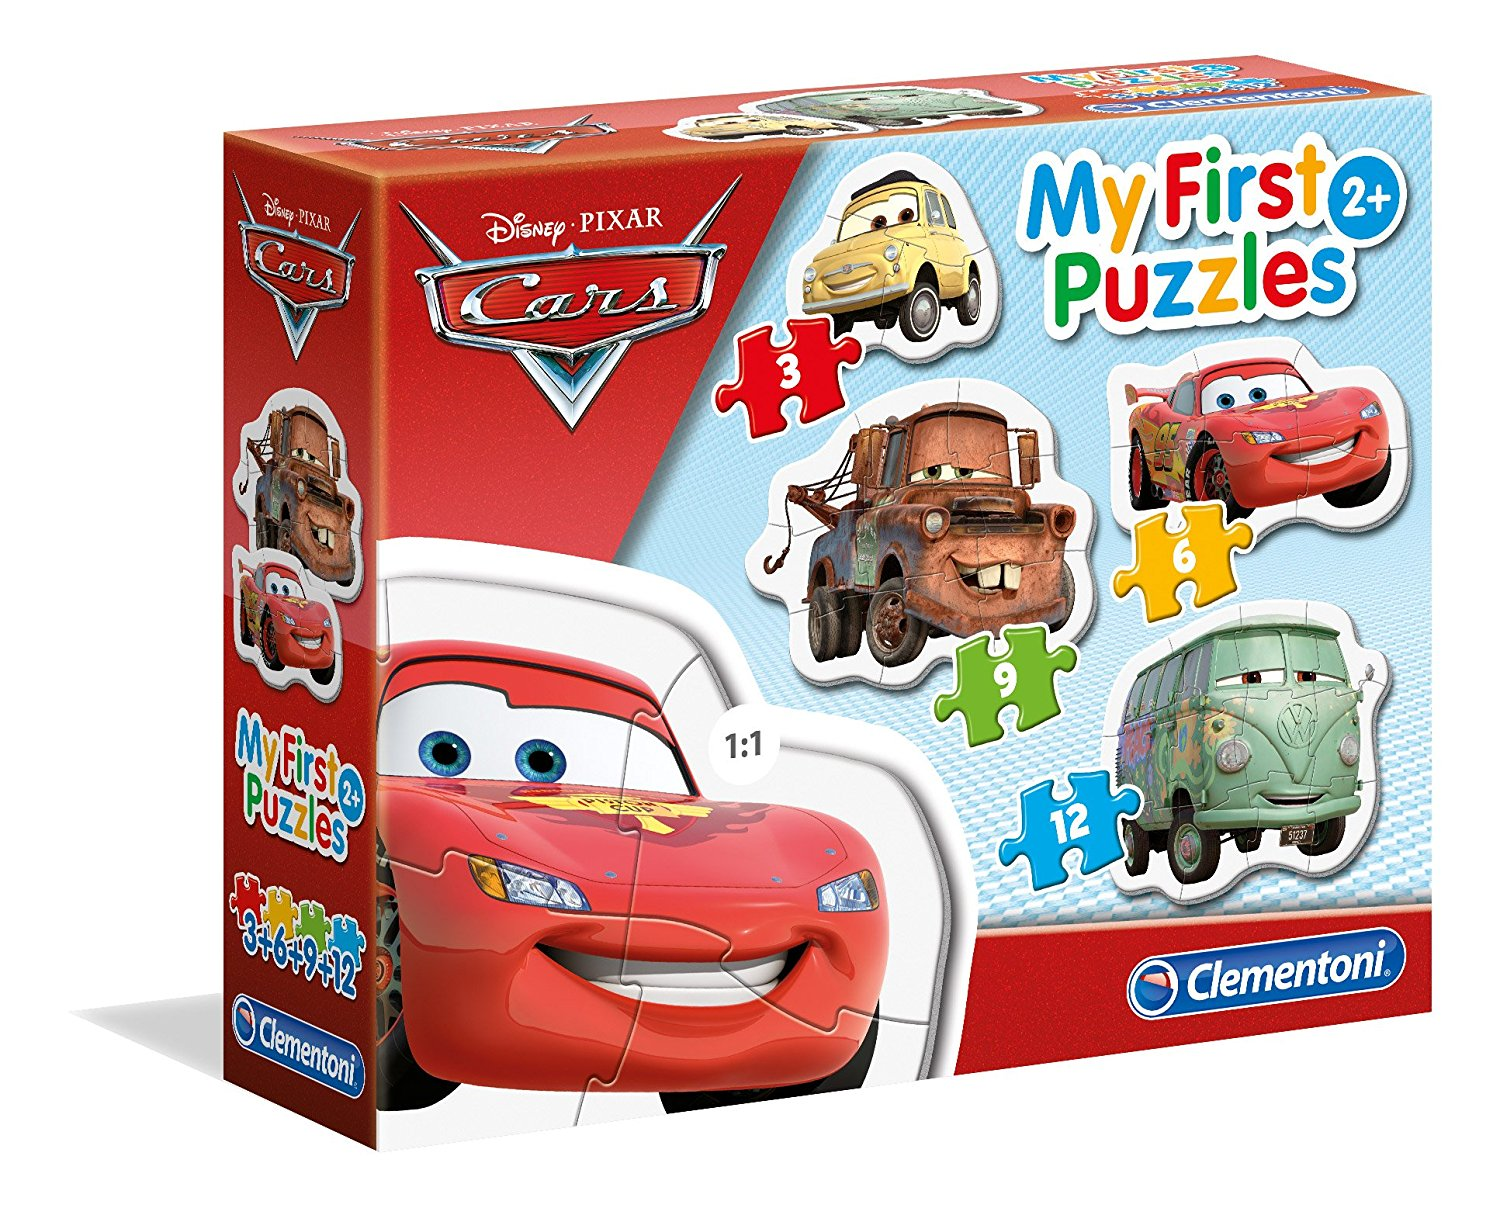 4-puzzles-my-first-puzzles-cars